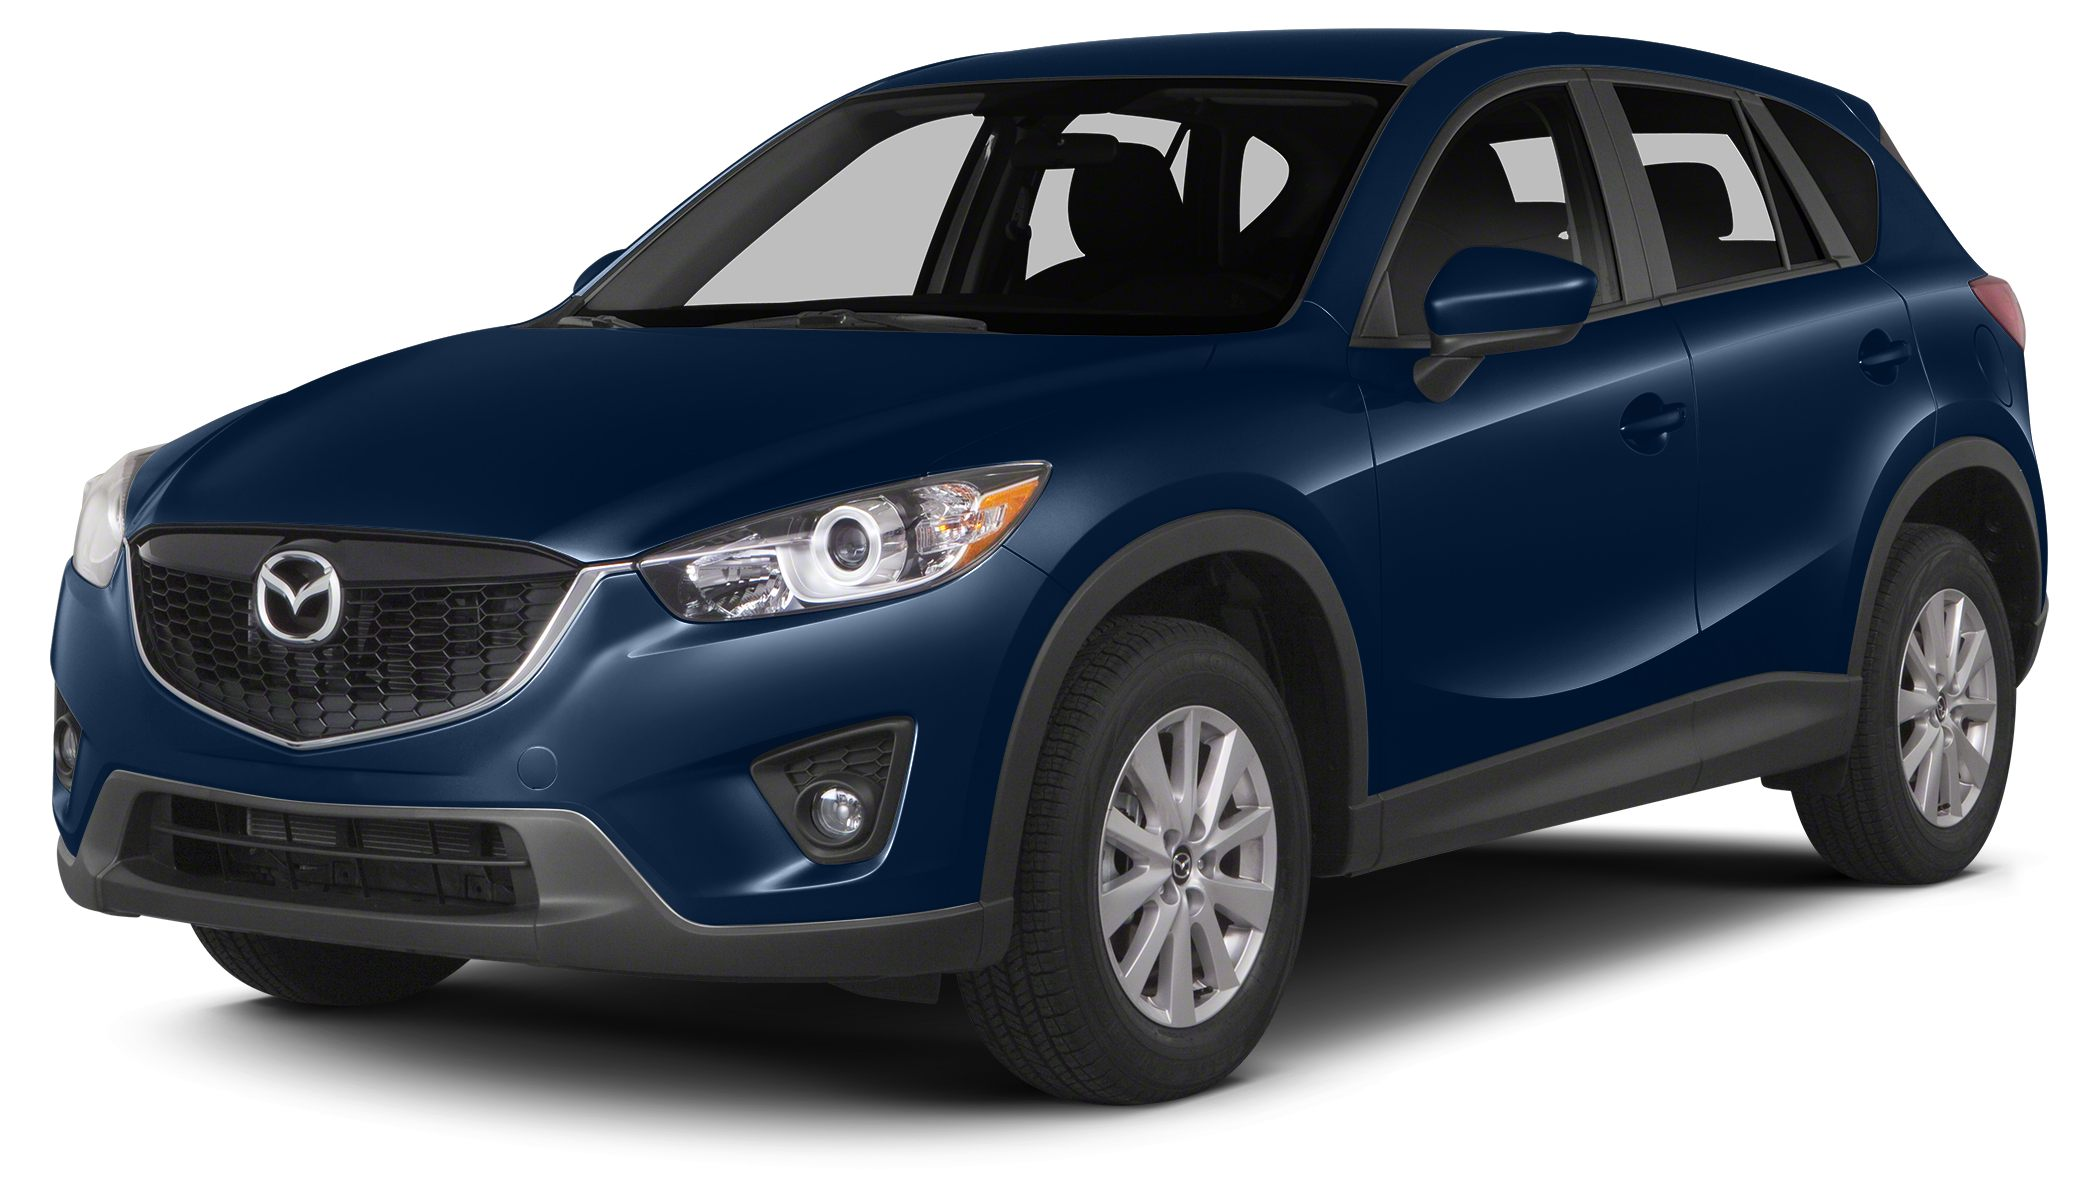 2014 Mazda CX-5 Touring CARFAX 1-Owner Extra Clean JUST REPRICED FROM 18000 FUEL EFFICIENT 32